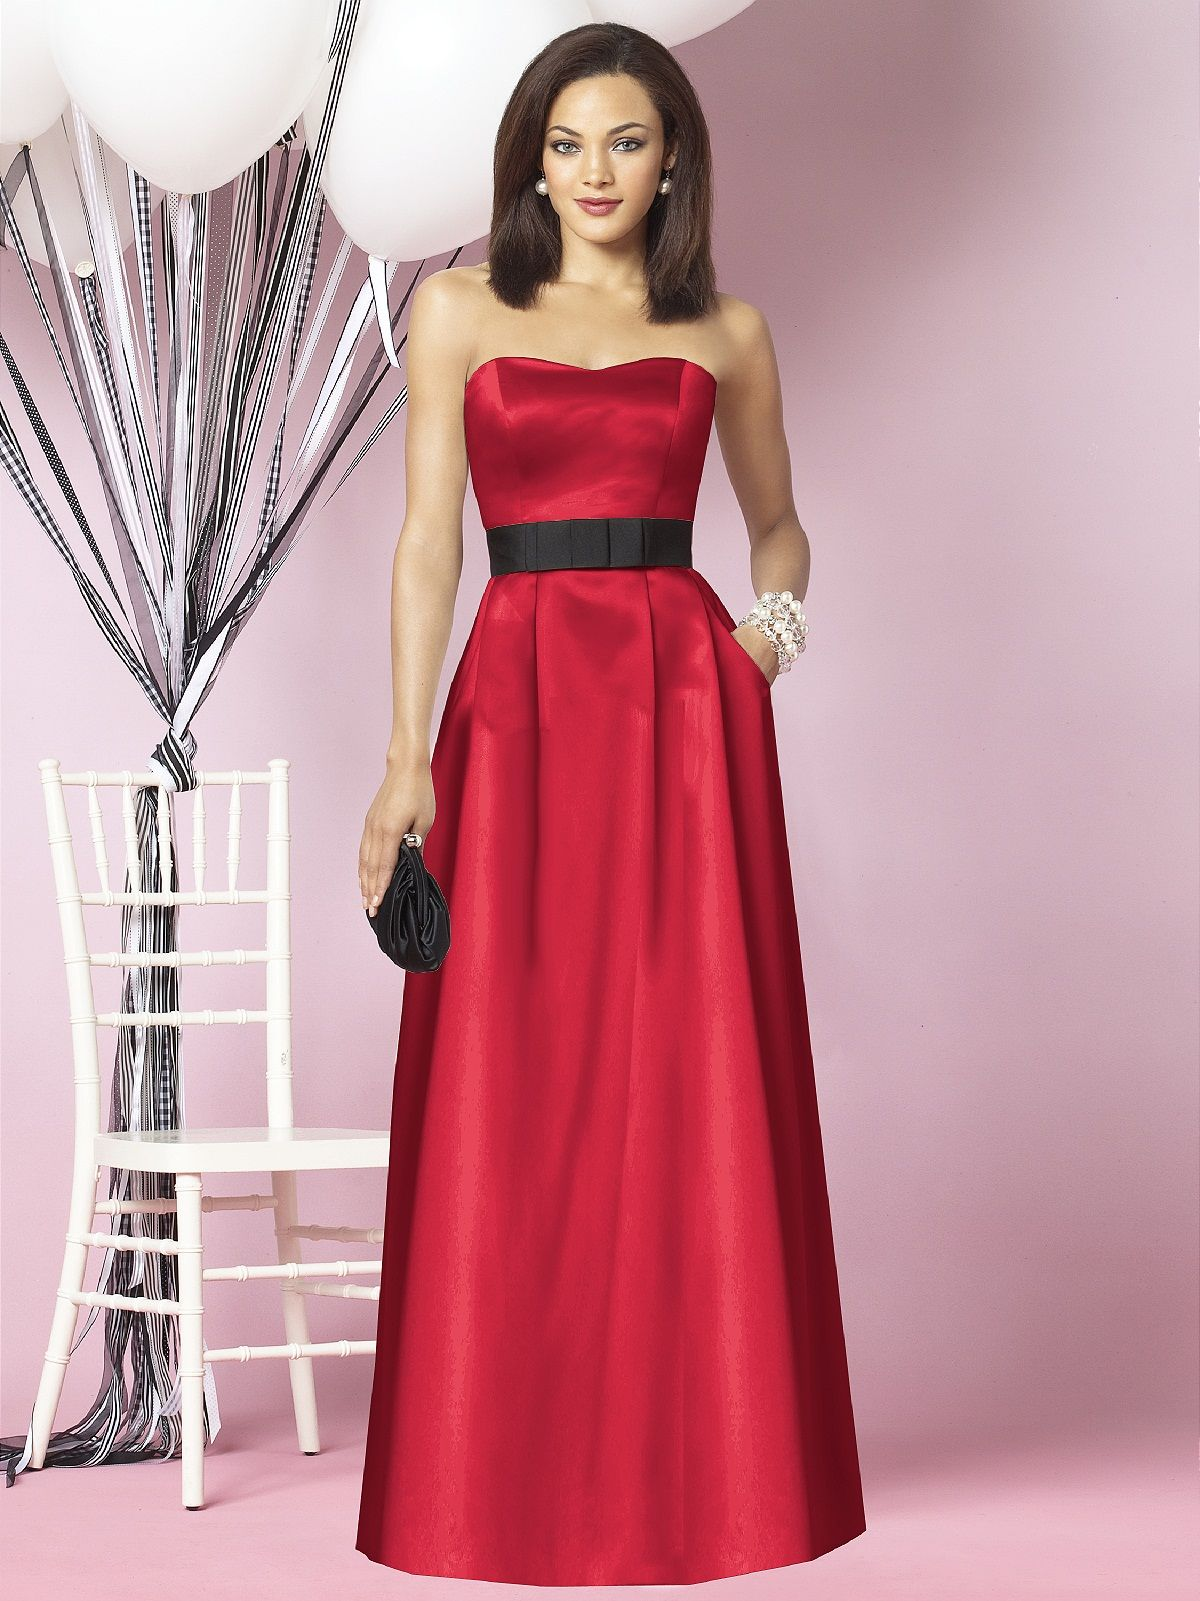 Pics for red bridesmaid dresses with black sash biancas pics for red bridesmaid dresses with black sash ombrellifo Choice Image